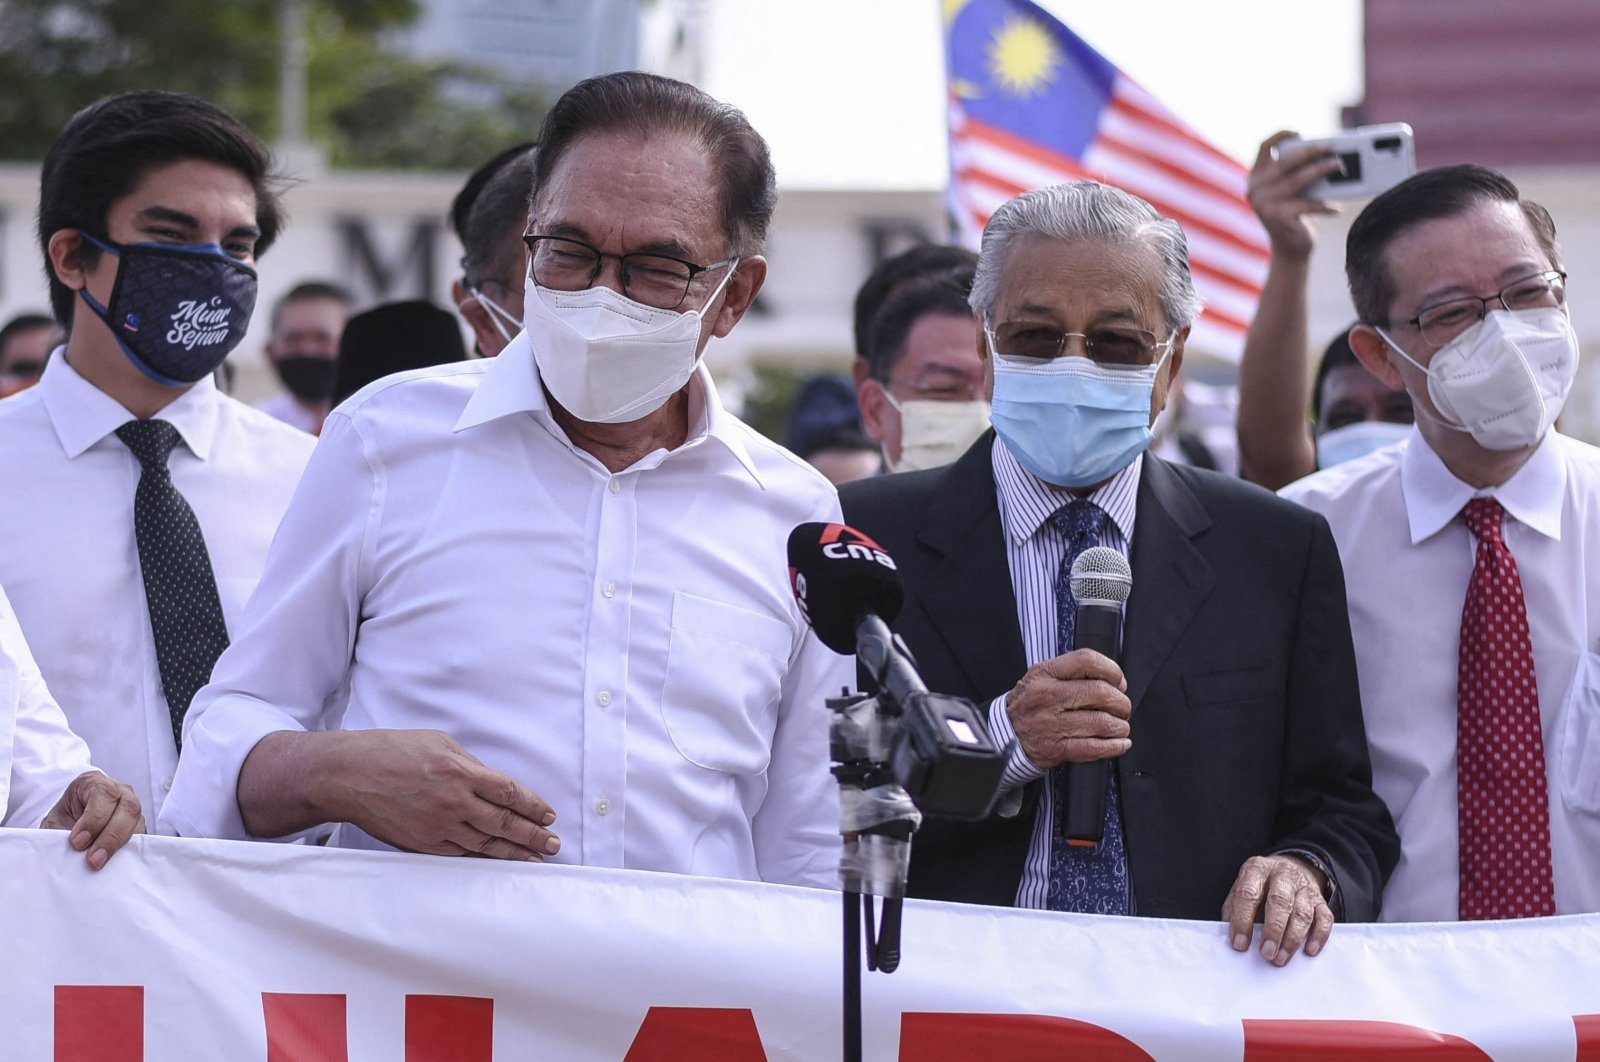 Malaysia's former Prime Minister Mahathir Mohamad (2-R) and opposition lawmaker Anwar Ibrahim (L) address the media as they protest the closure of Parliament in Kuala Lumpur, Malaysia, on Aug. 2, 2021. (AFP Photo)